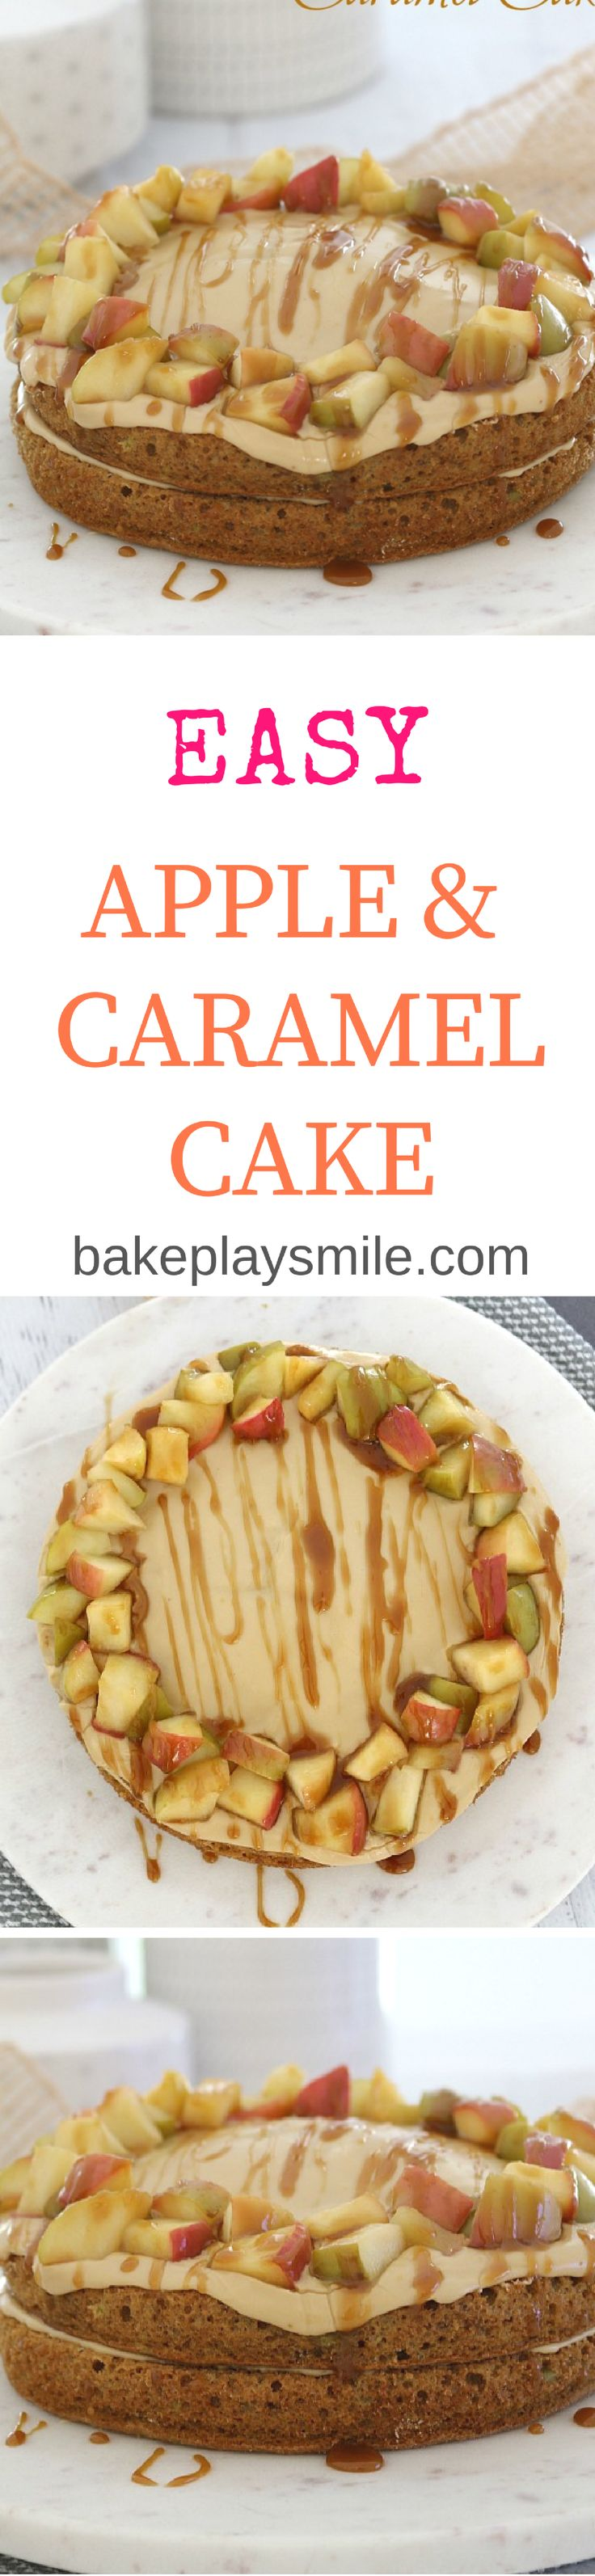 A deliciously moist and super easy apple & caramel cake with extra chunks of apple and a caramel sauce drizzled over the top. This is sure to become a family favourite!  #apple #caramel #layer #cake #baking #recipe #school #dessert #snacks #birthday #thermomix #conventional  http://bakeplaysmile.com/easy-apple-caramel-cake/